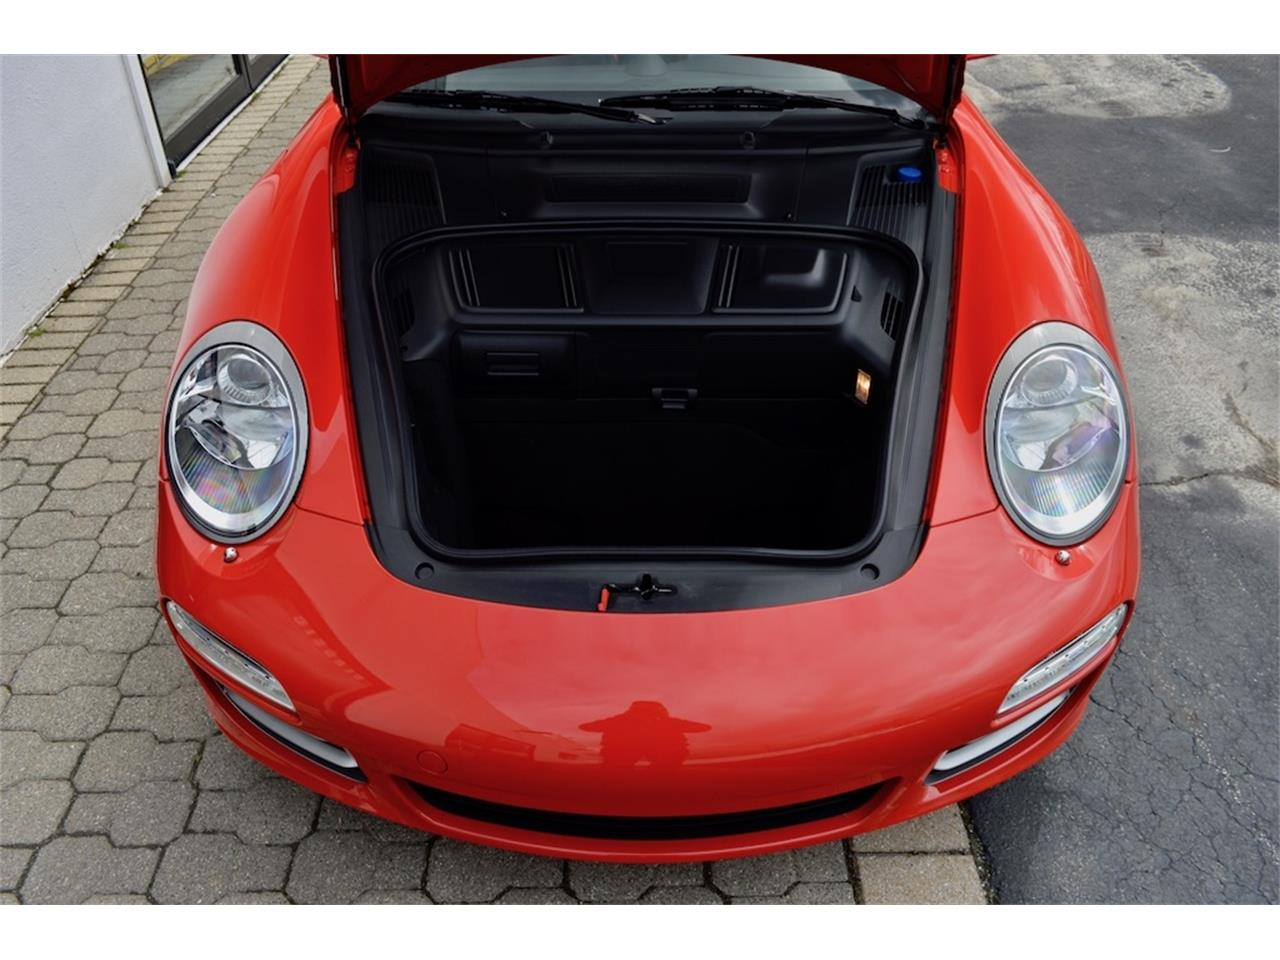 2011 Porsche 911 Carrera 4S for sale in West Chester, PA – photo 18